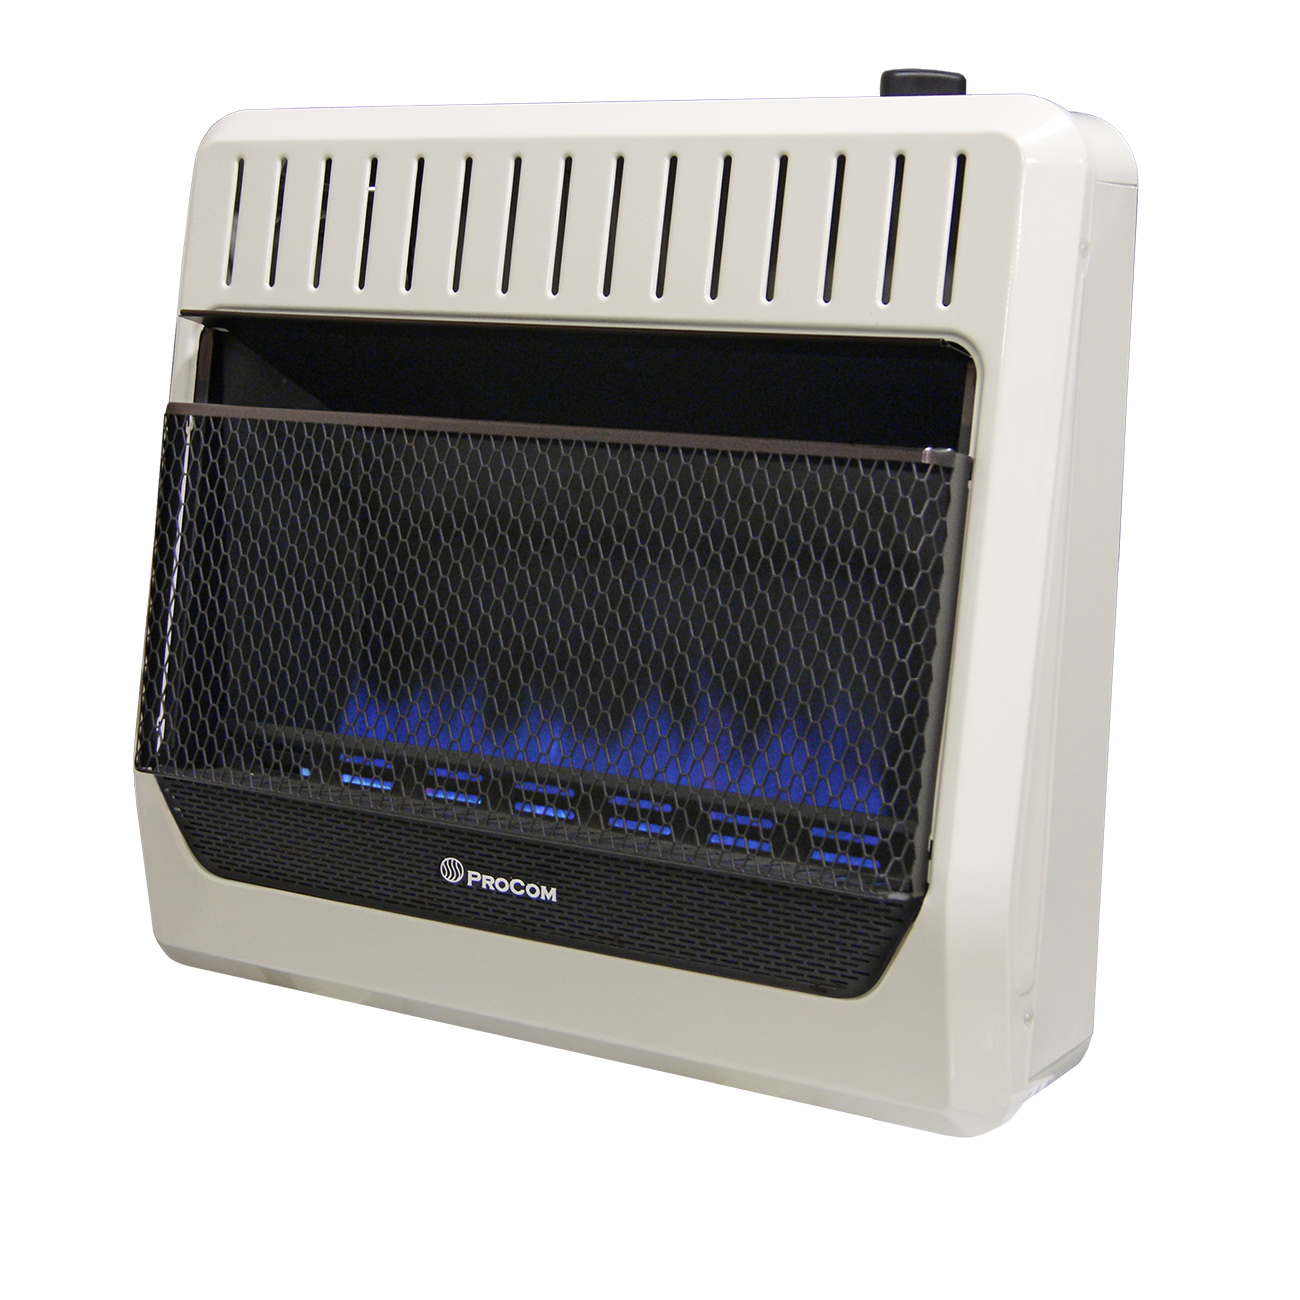 Ventless Dual Fuel Blue Flame Wall Heater Thermostat